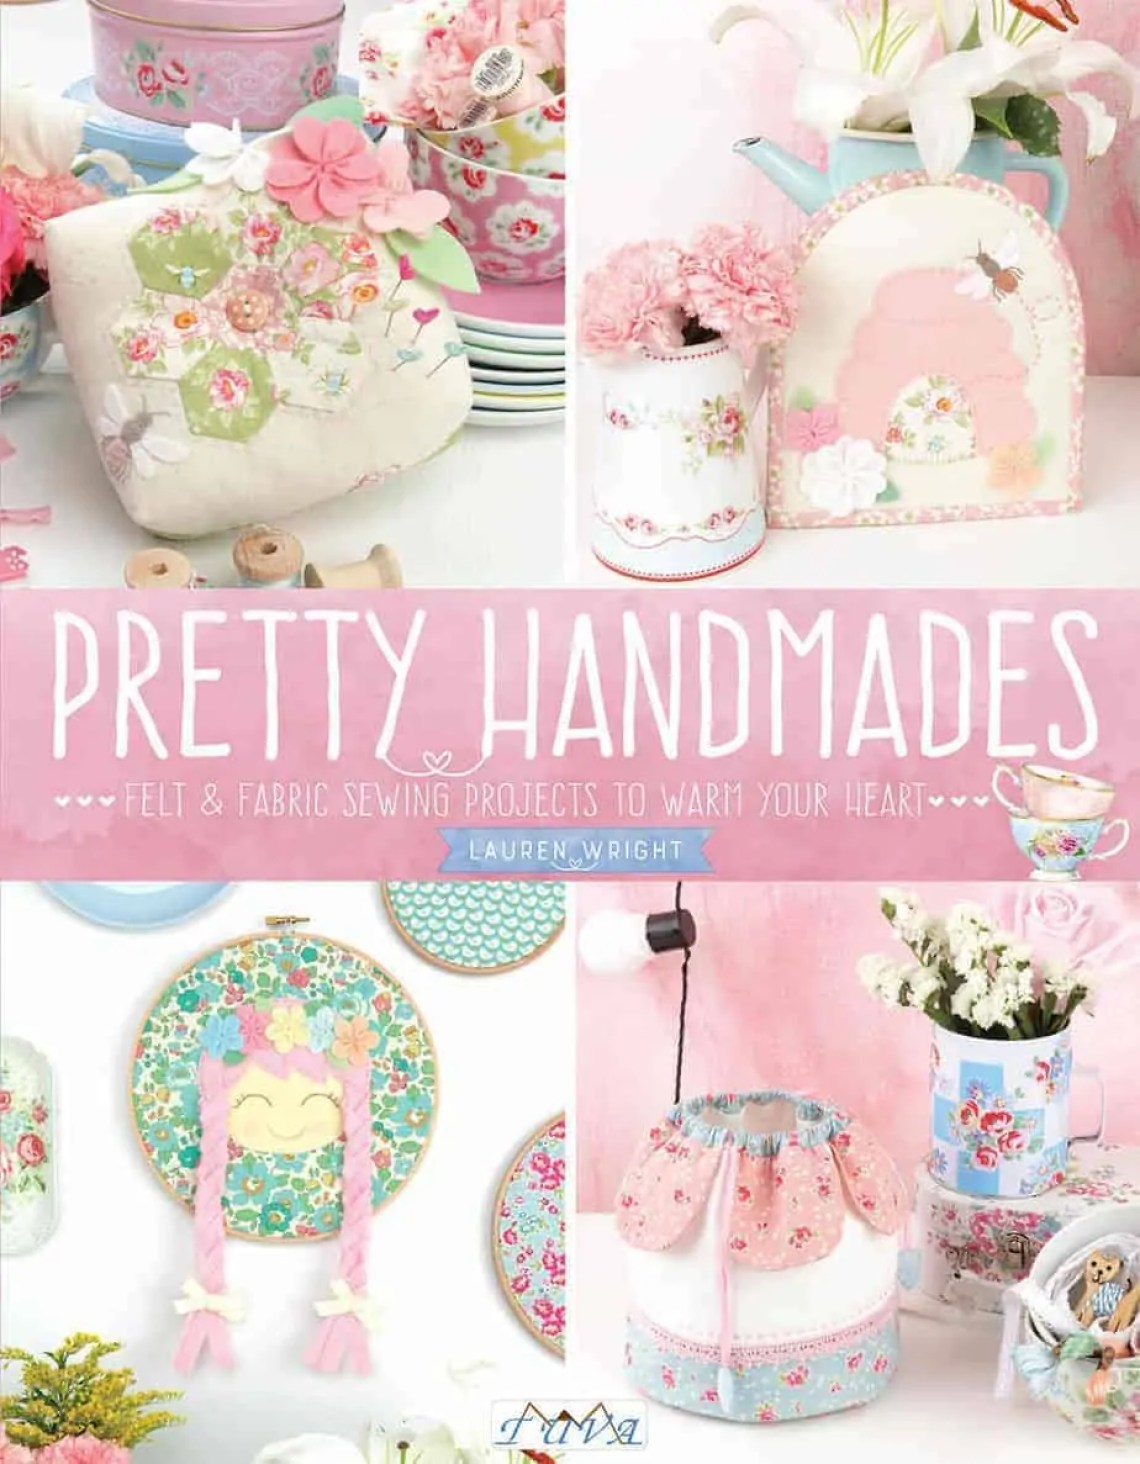 Pretty Handmades by Lauren Wright of Molly and Mama